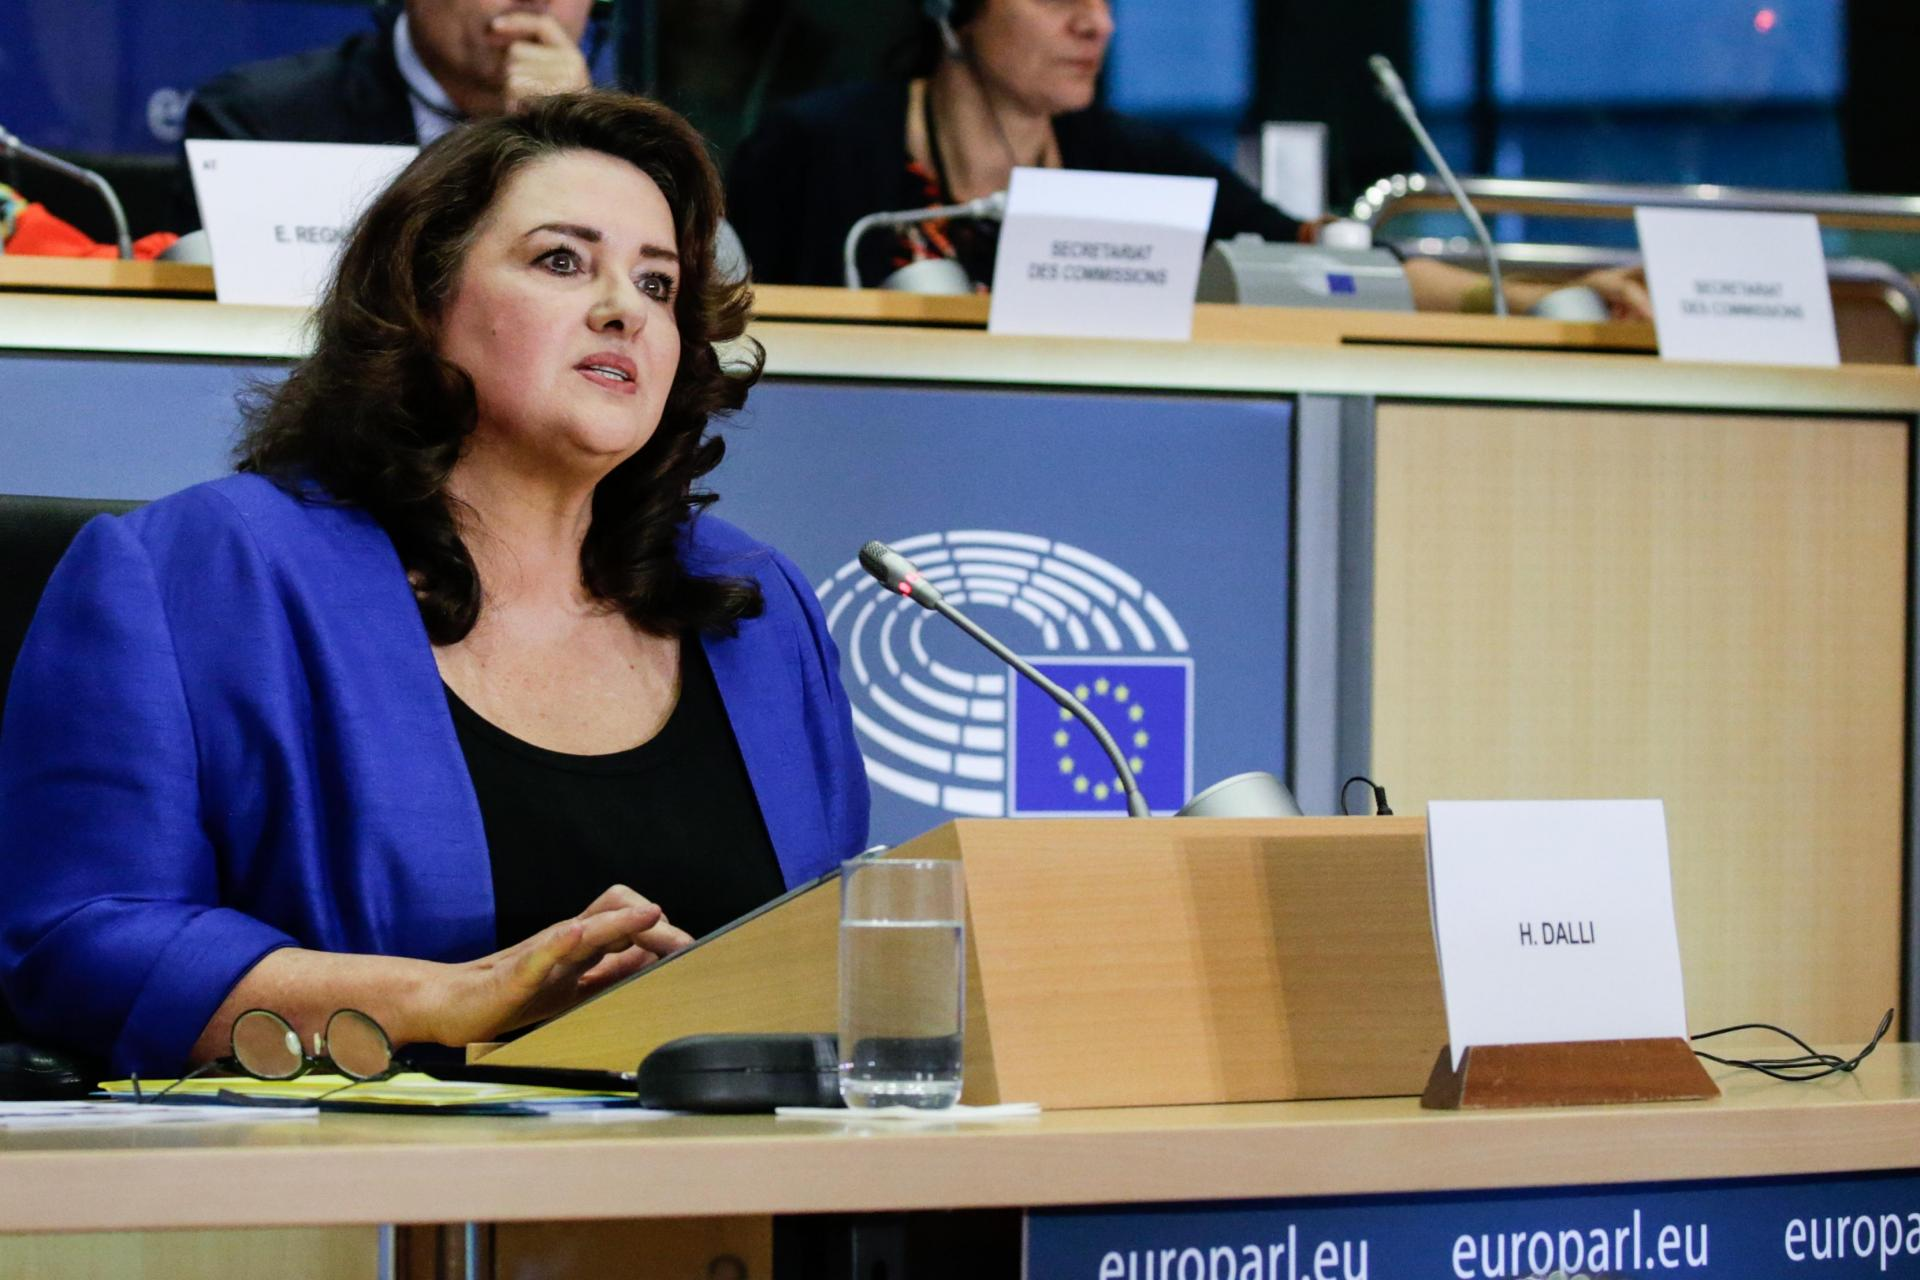 Helena Dalli would have handled Panama Papers scandal 'totally differently'